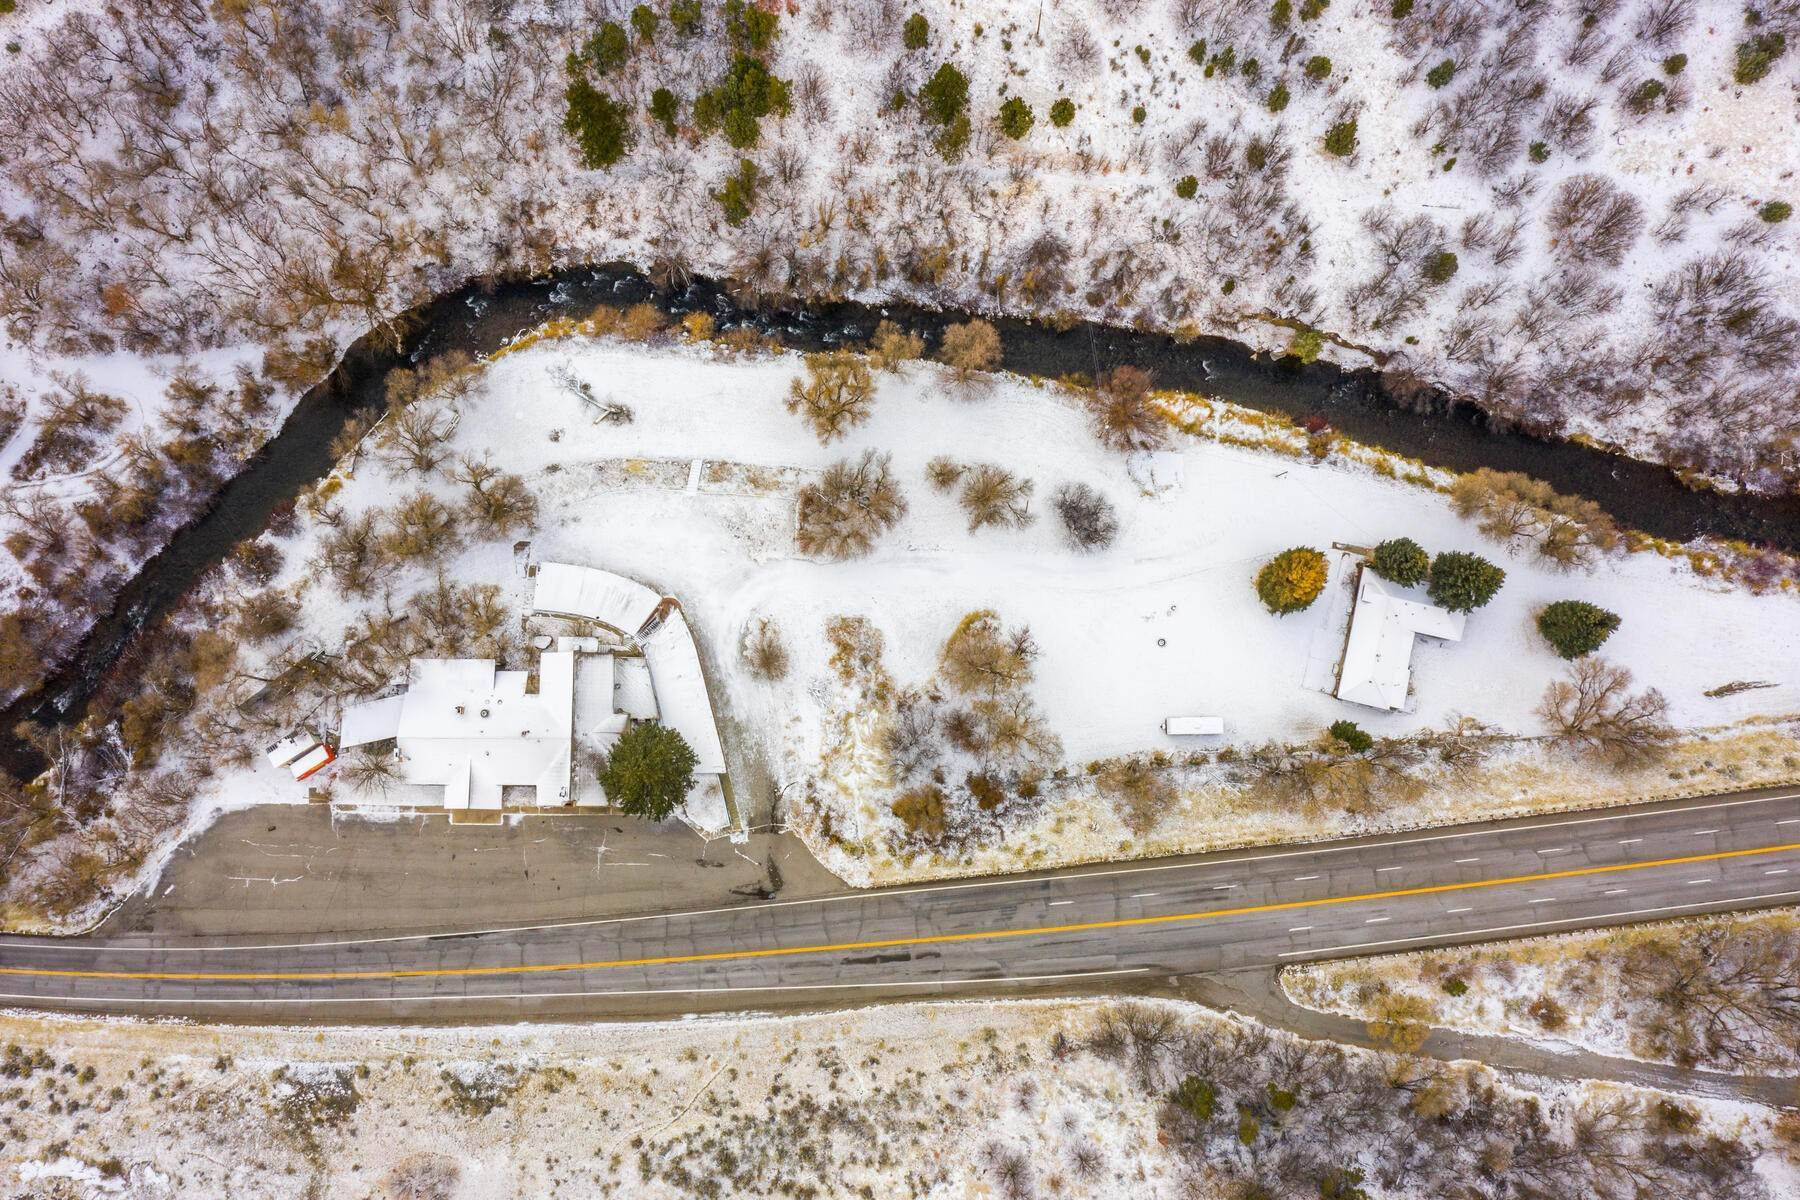 Property for Sale at Logan Canyon Commercial Property 4880 E Highway 89 Logan, Utah 84321 United States